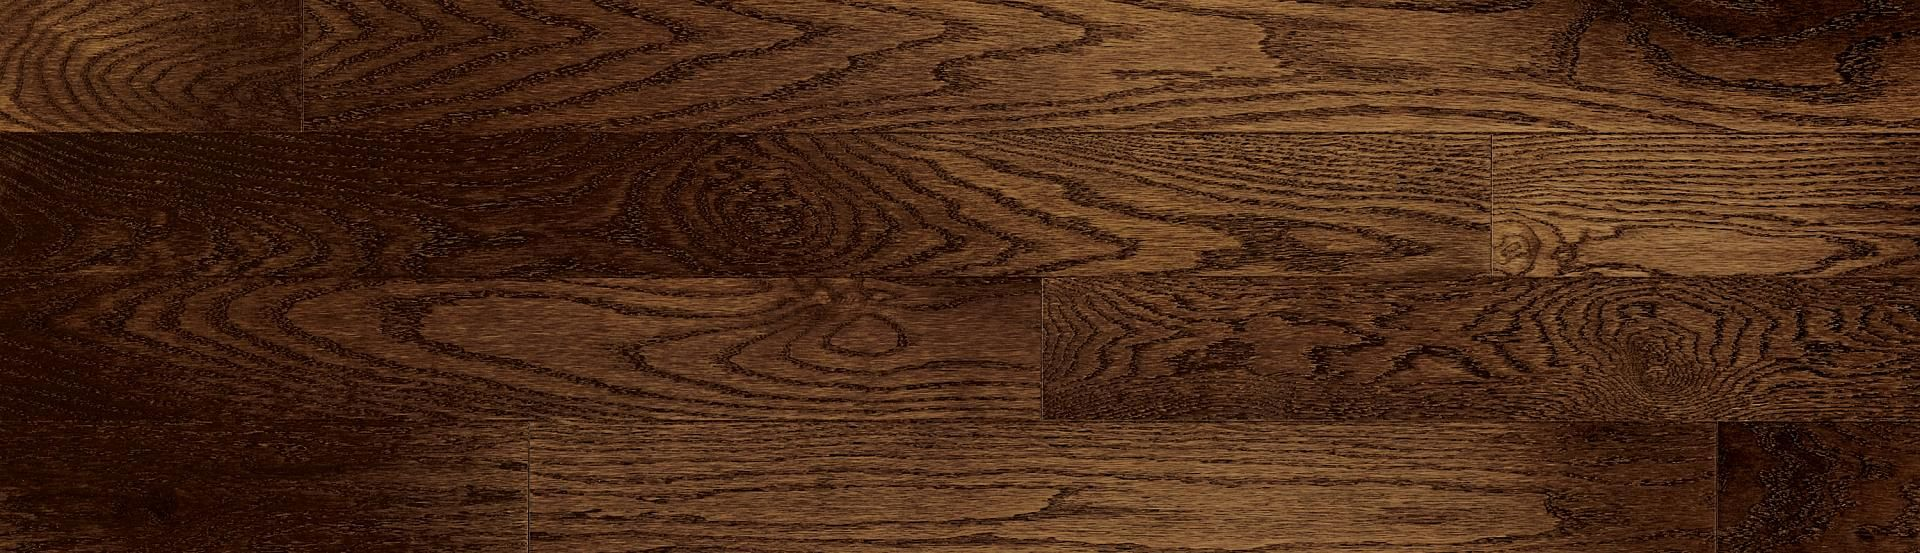 Lauzon Flooring Cigarillo Red Oak Hardwood Flooring From Our